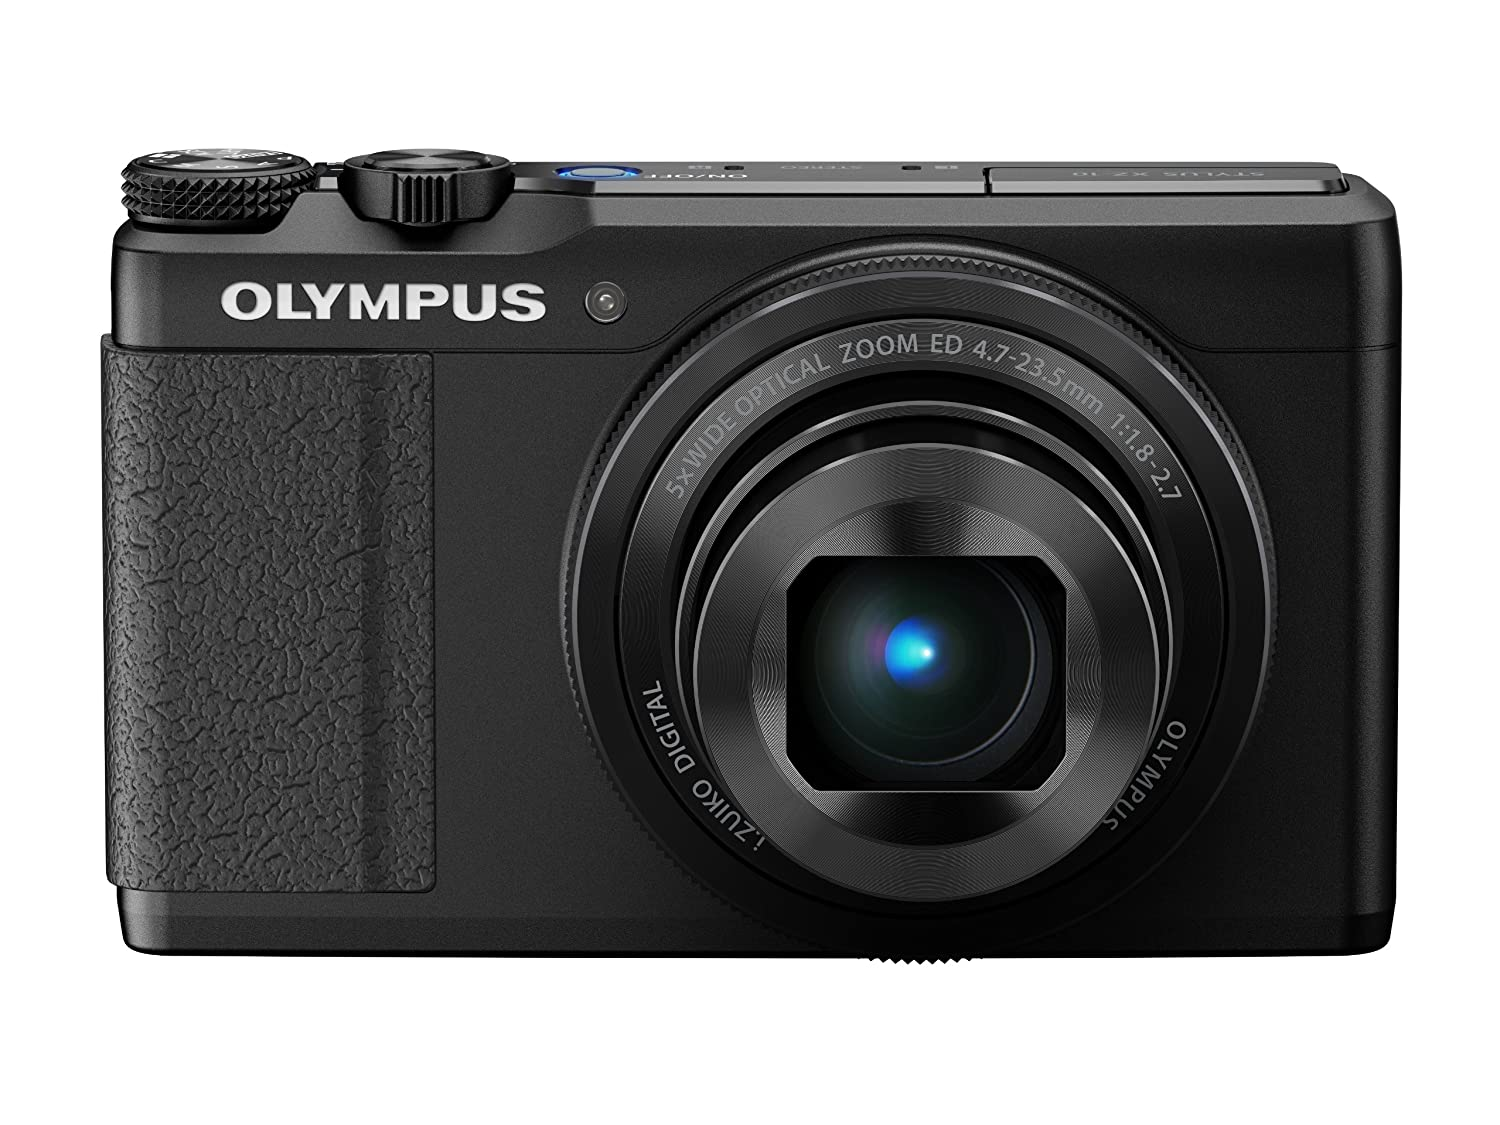 Top 7 Best Point and Shoot Camera for Low Light - Buyer's Guide 11